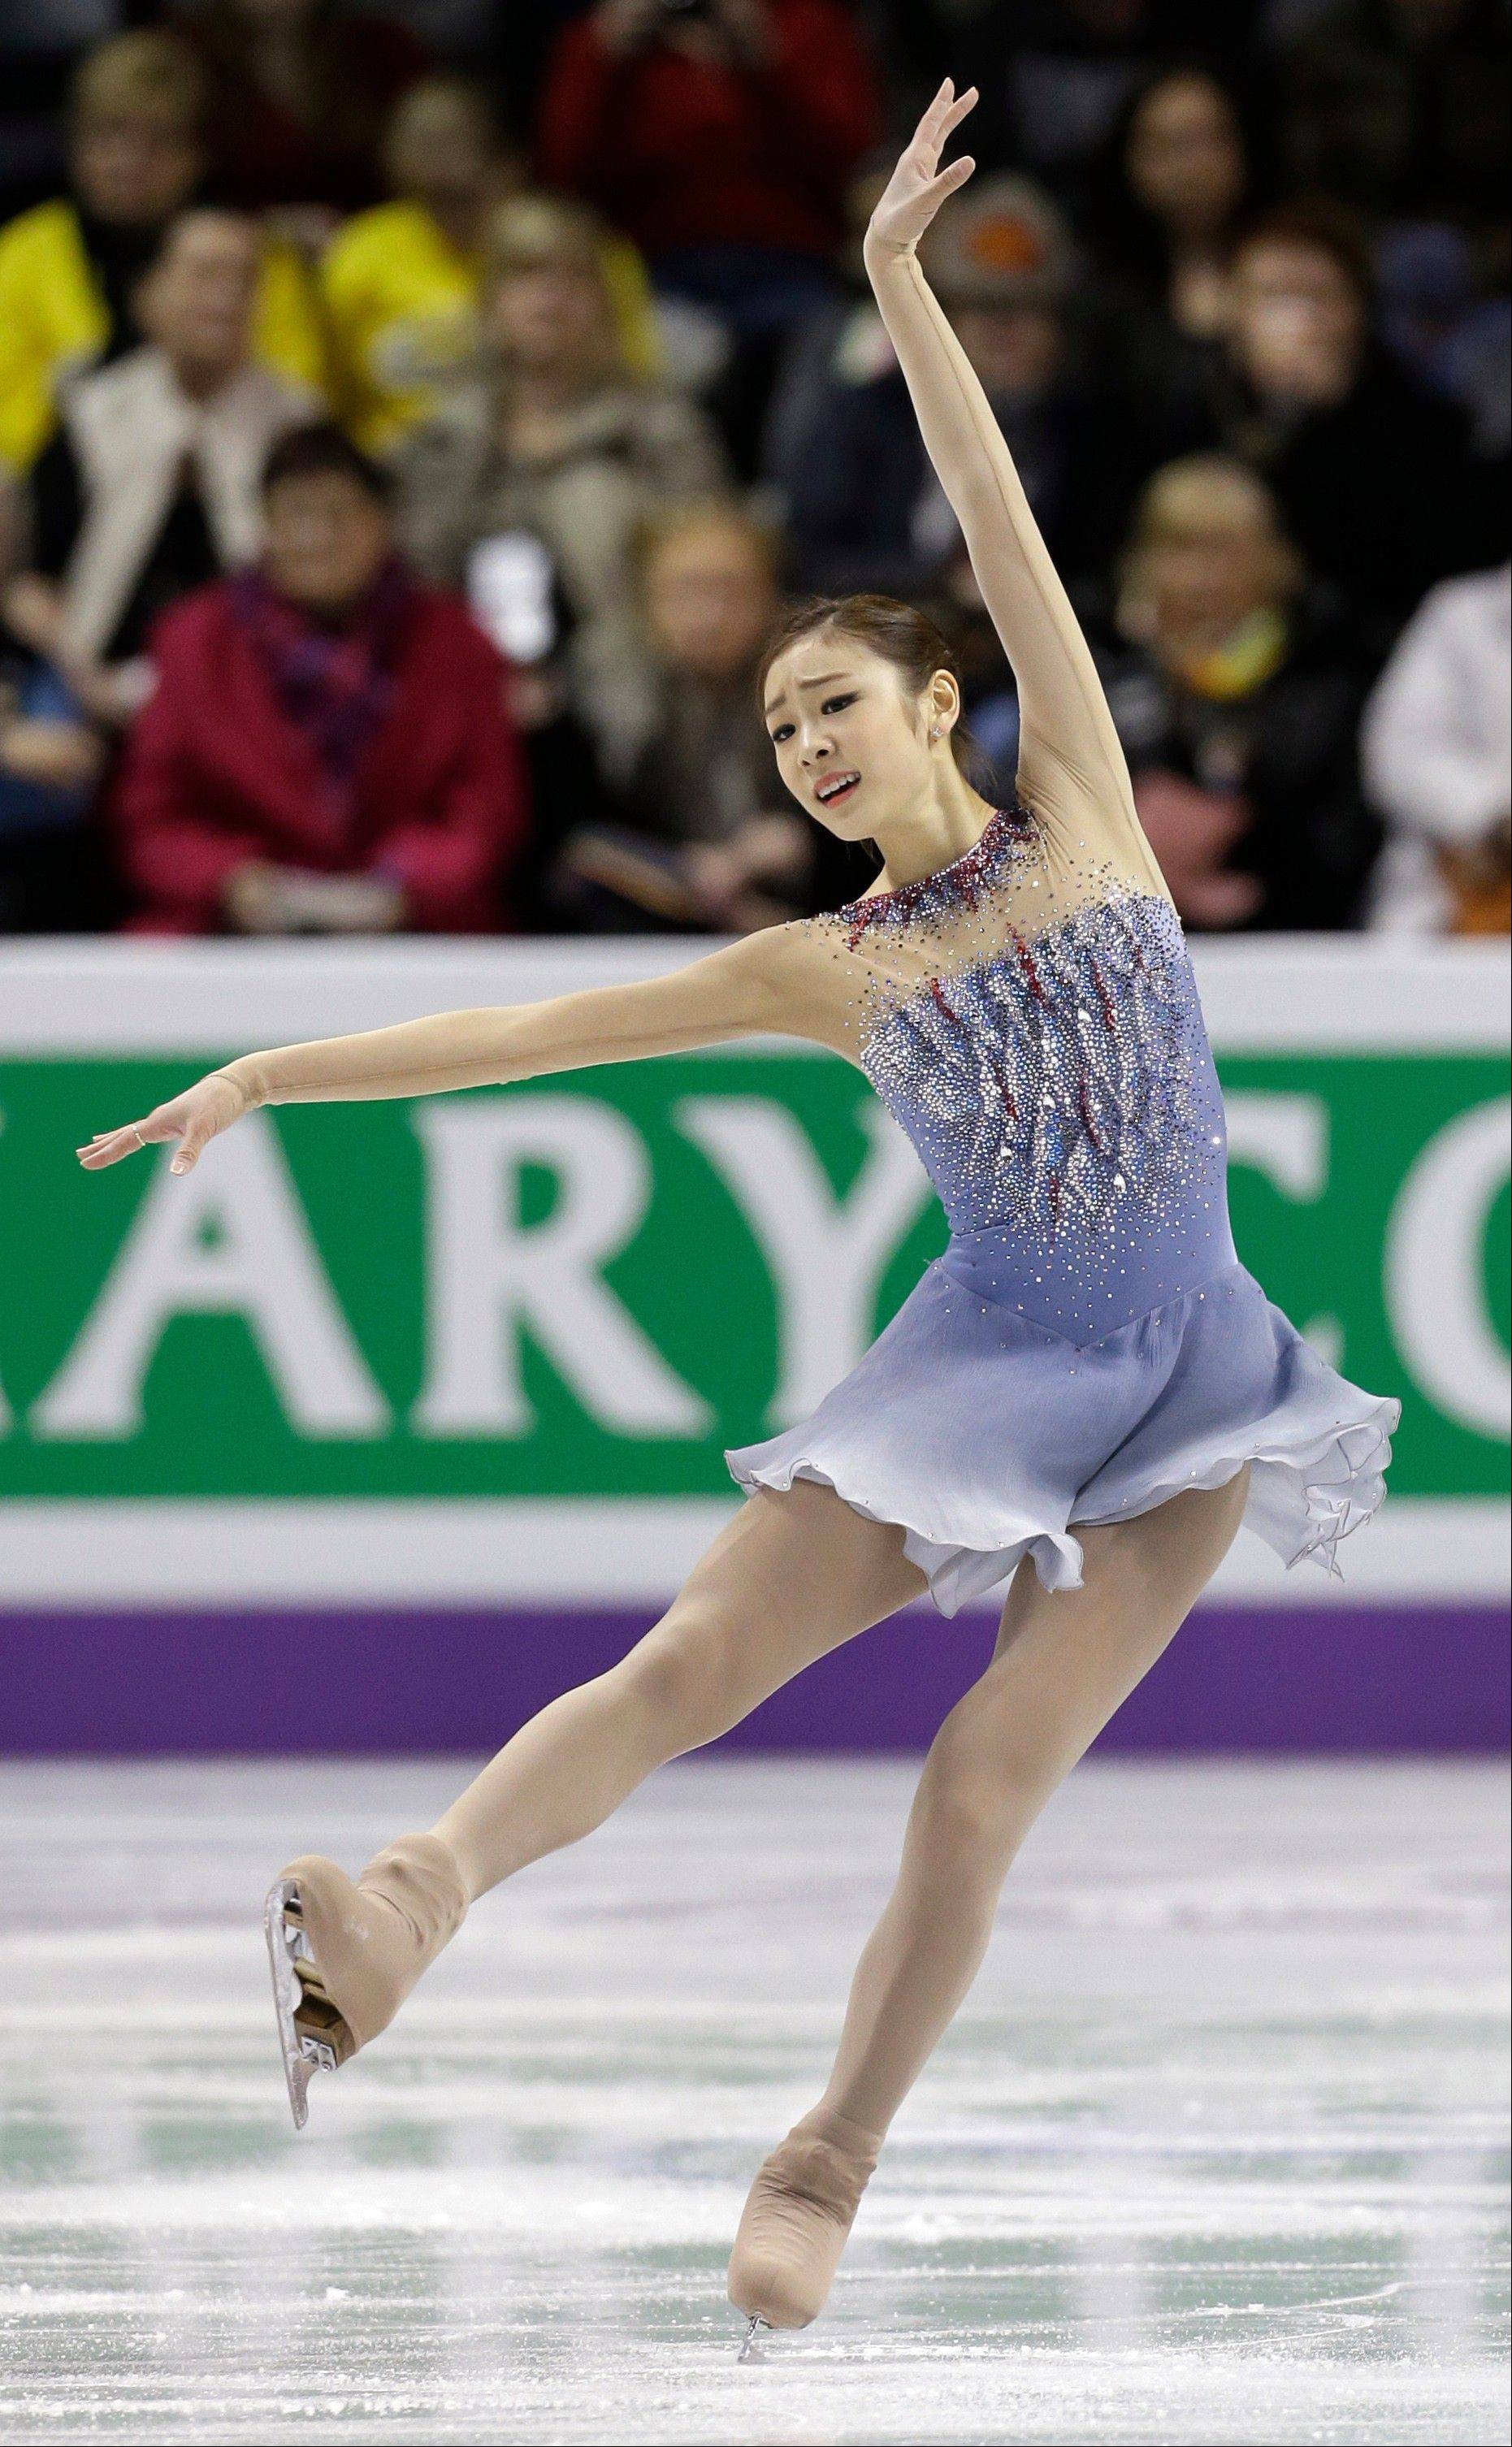 Kim Yu-na of South Korea performs during the ladies short program at the World Figure Skating Championships Thursday, March 14, 2013, in London, Ontario.